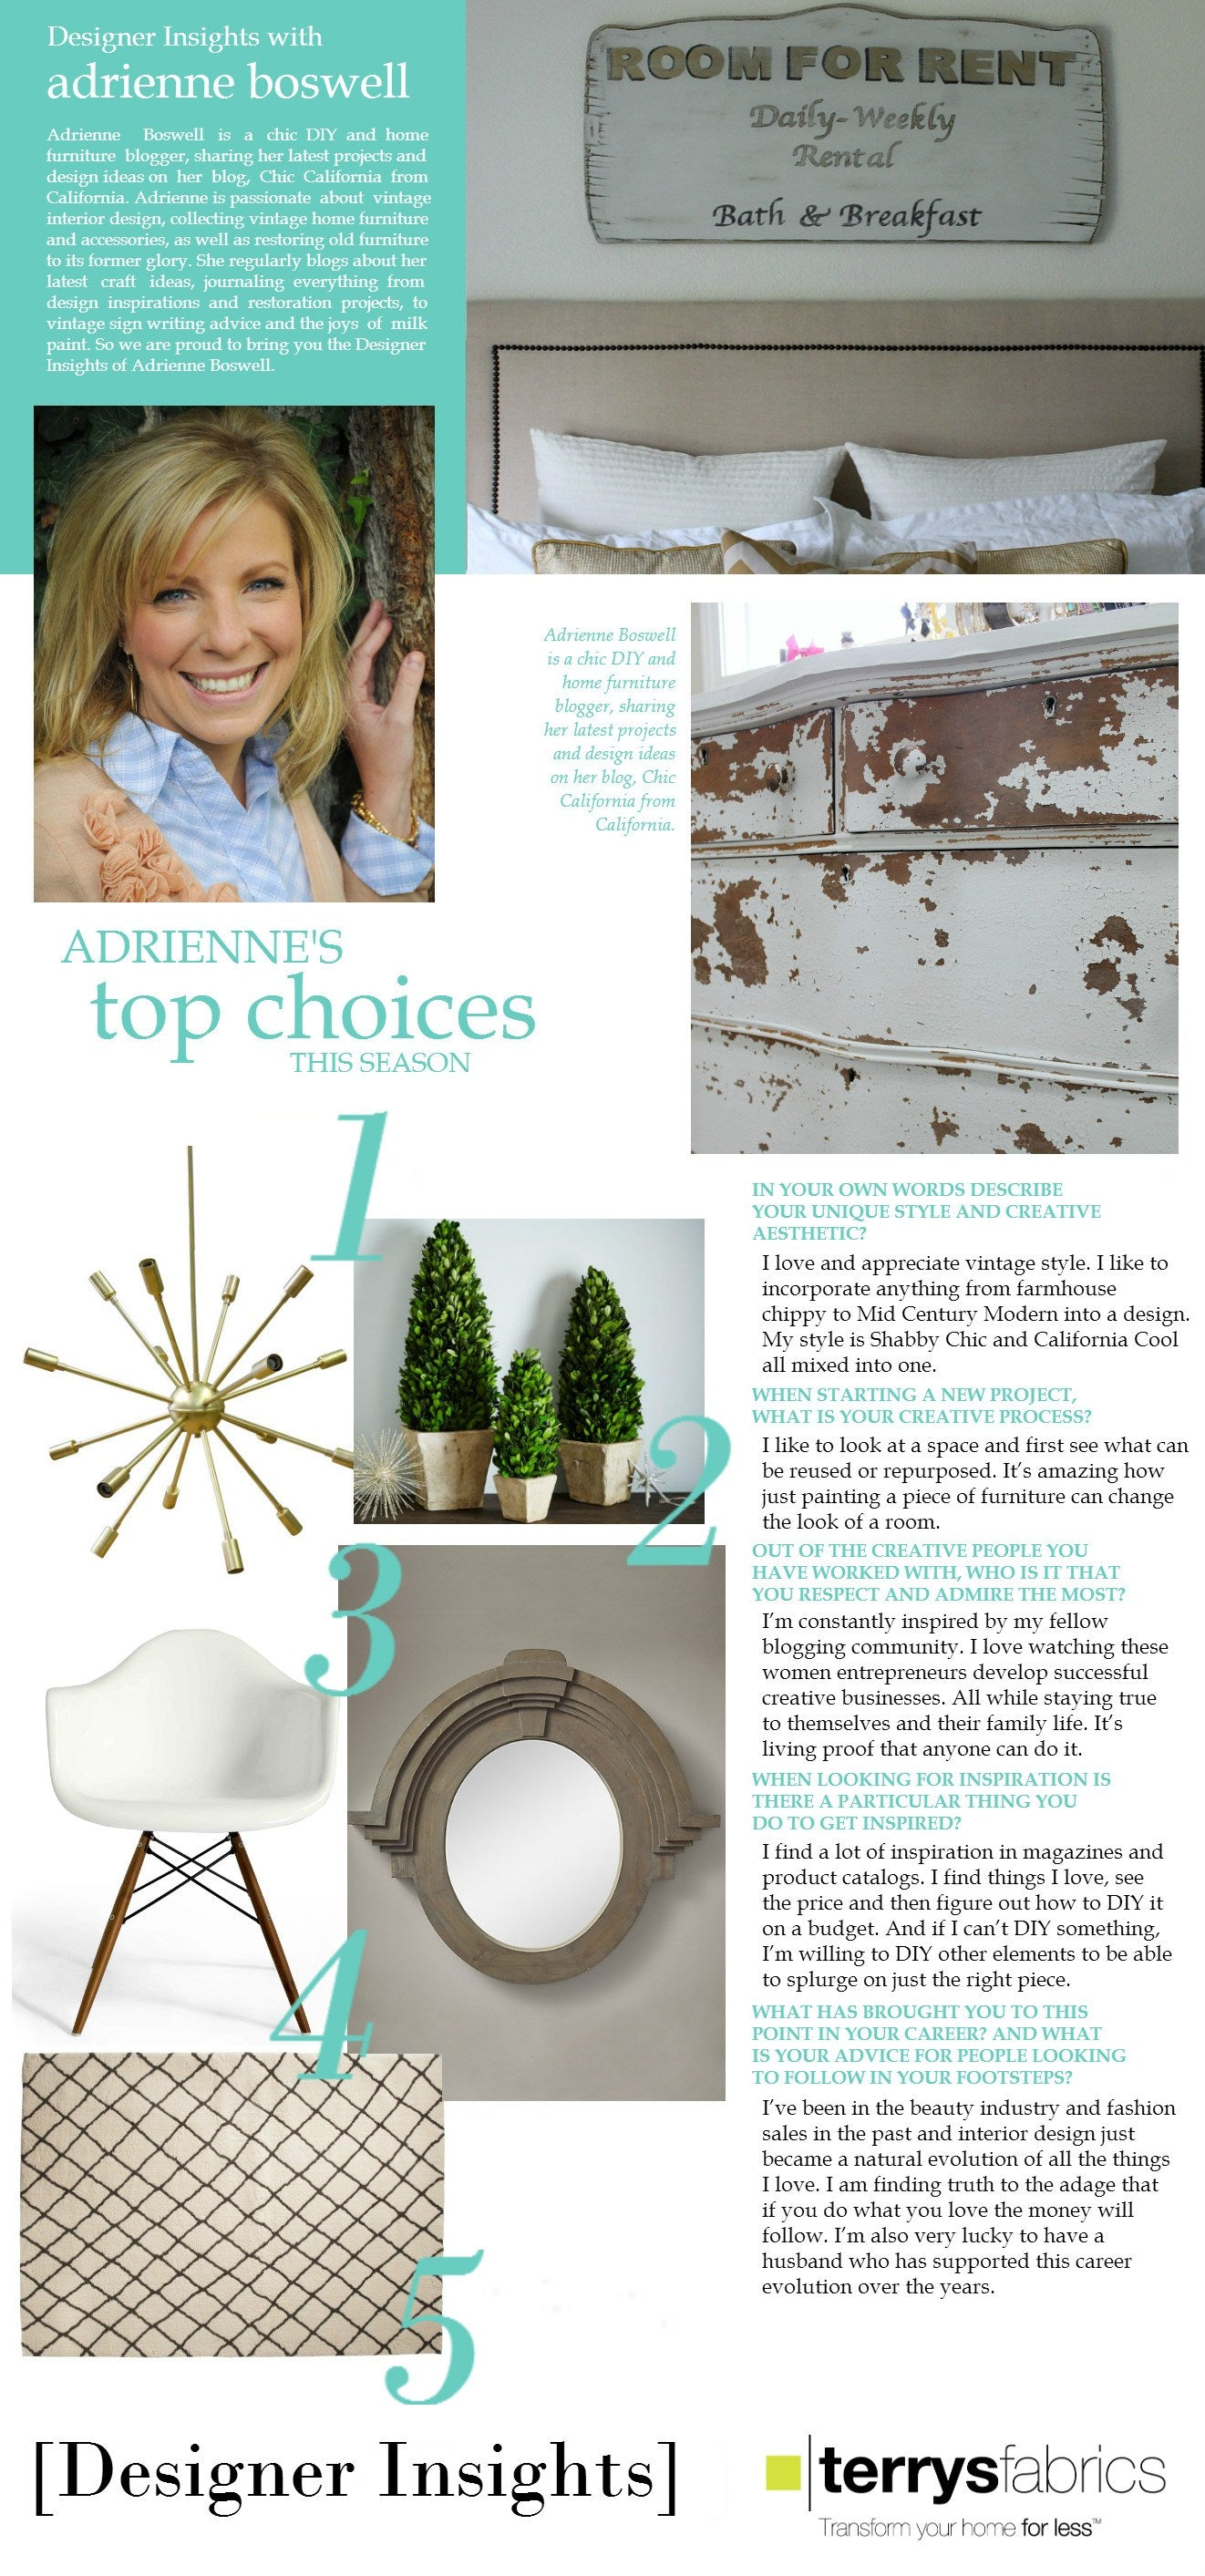 Designer Insights - Adrienne Boswell